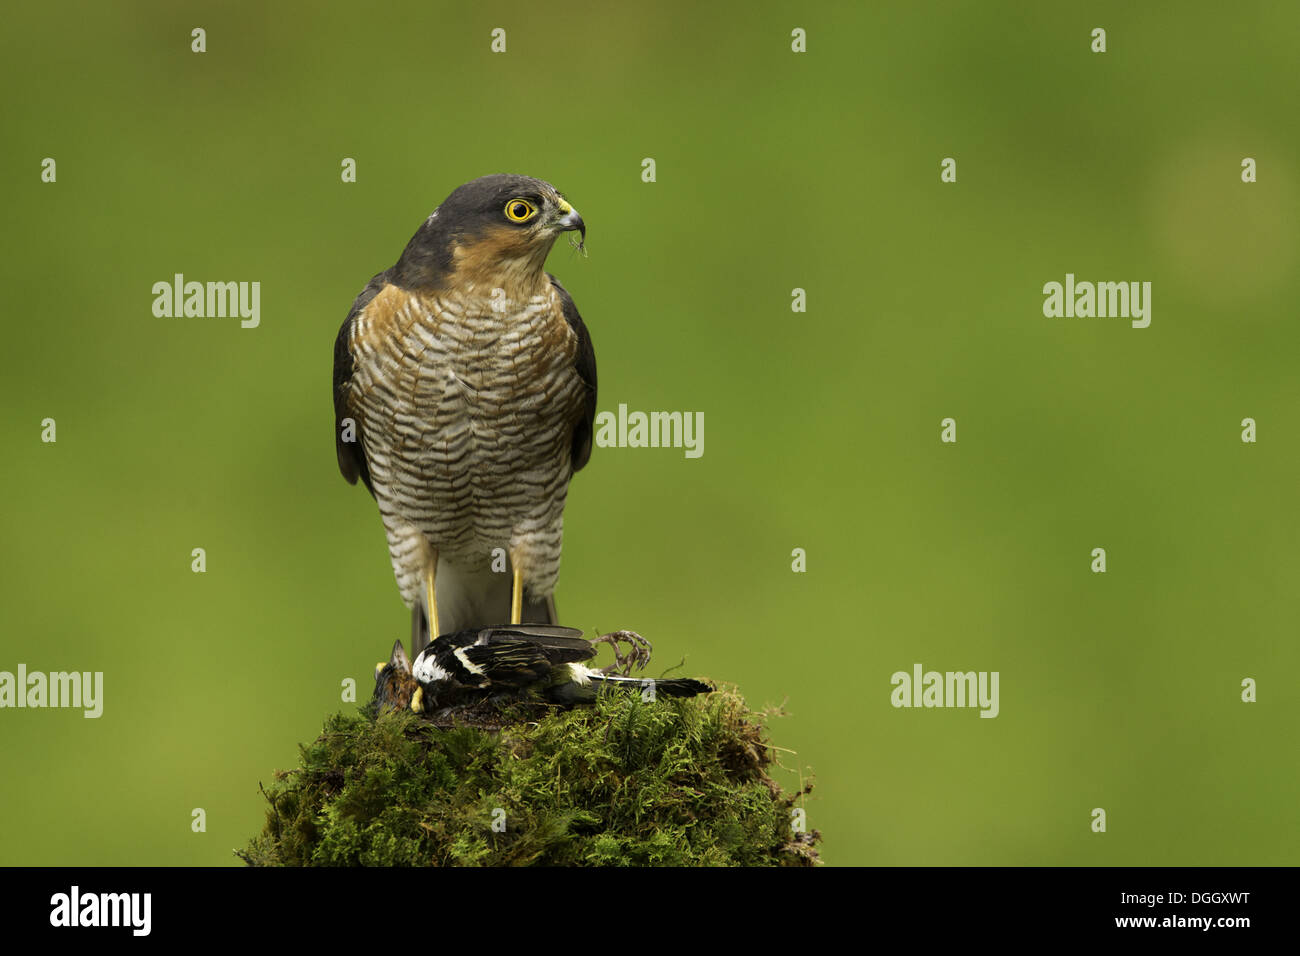 Eurasian Sparrowhawk (Accipiter nisus) adult male, with Chaffinch (Fringilla coelebs) prey, Scottish Borders, Scotland, October - Stock Image